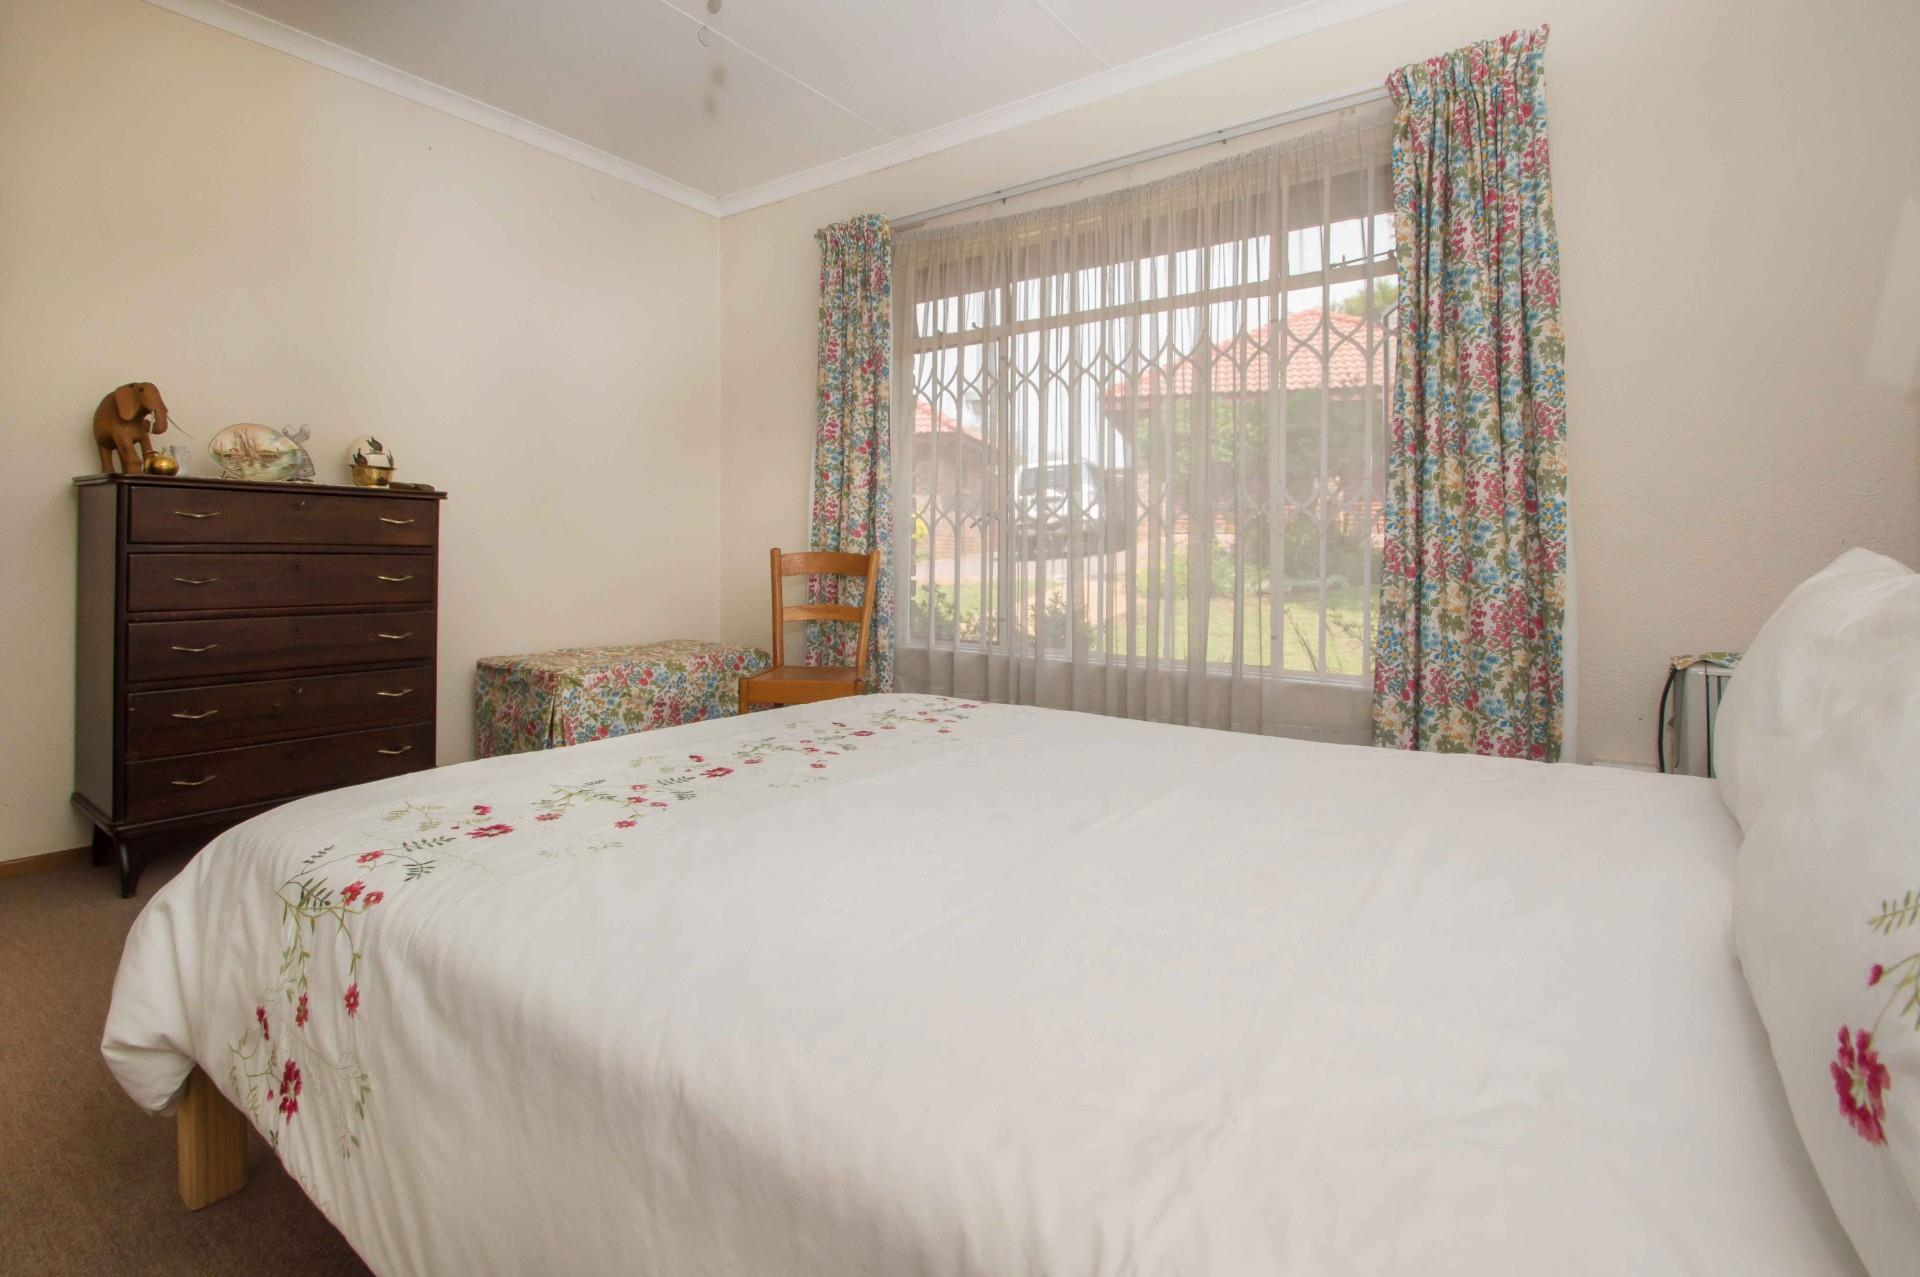 3 Bedroom Townhouse For Sale in Northwold